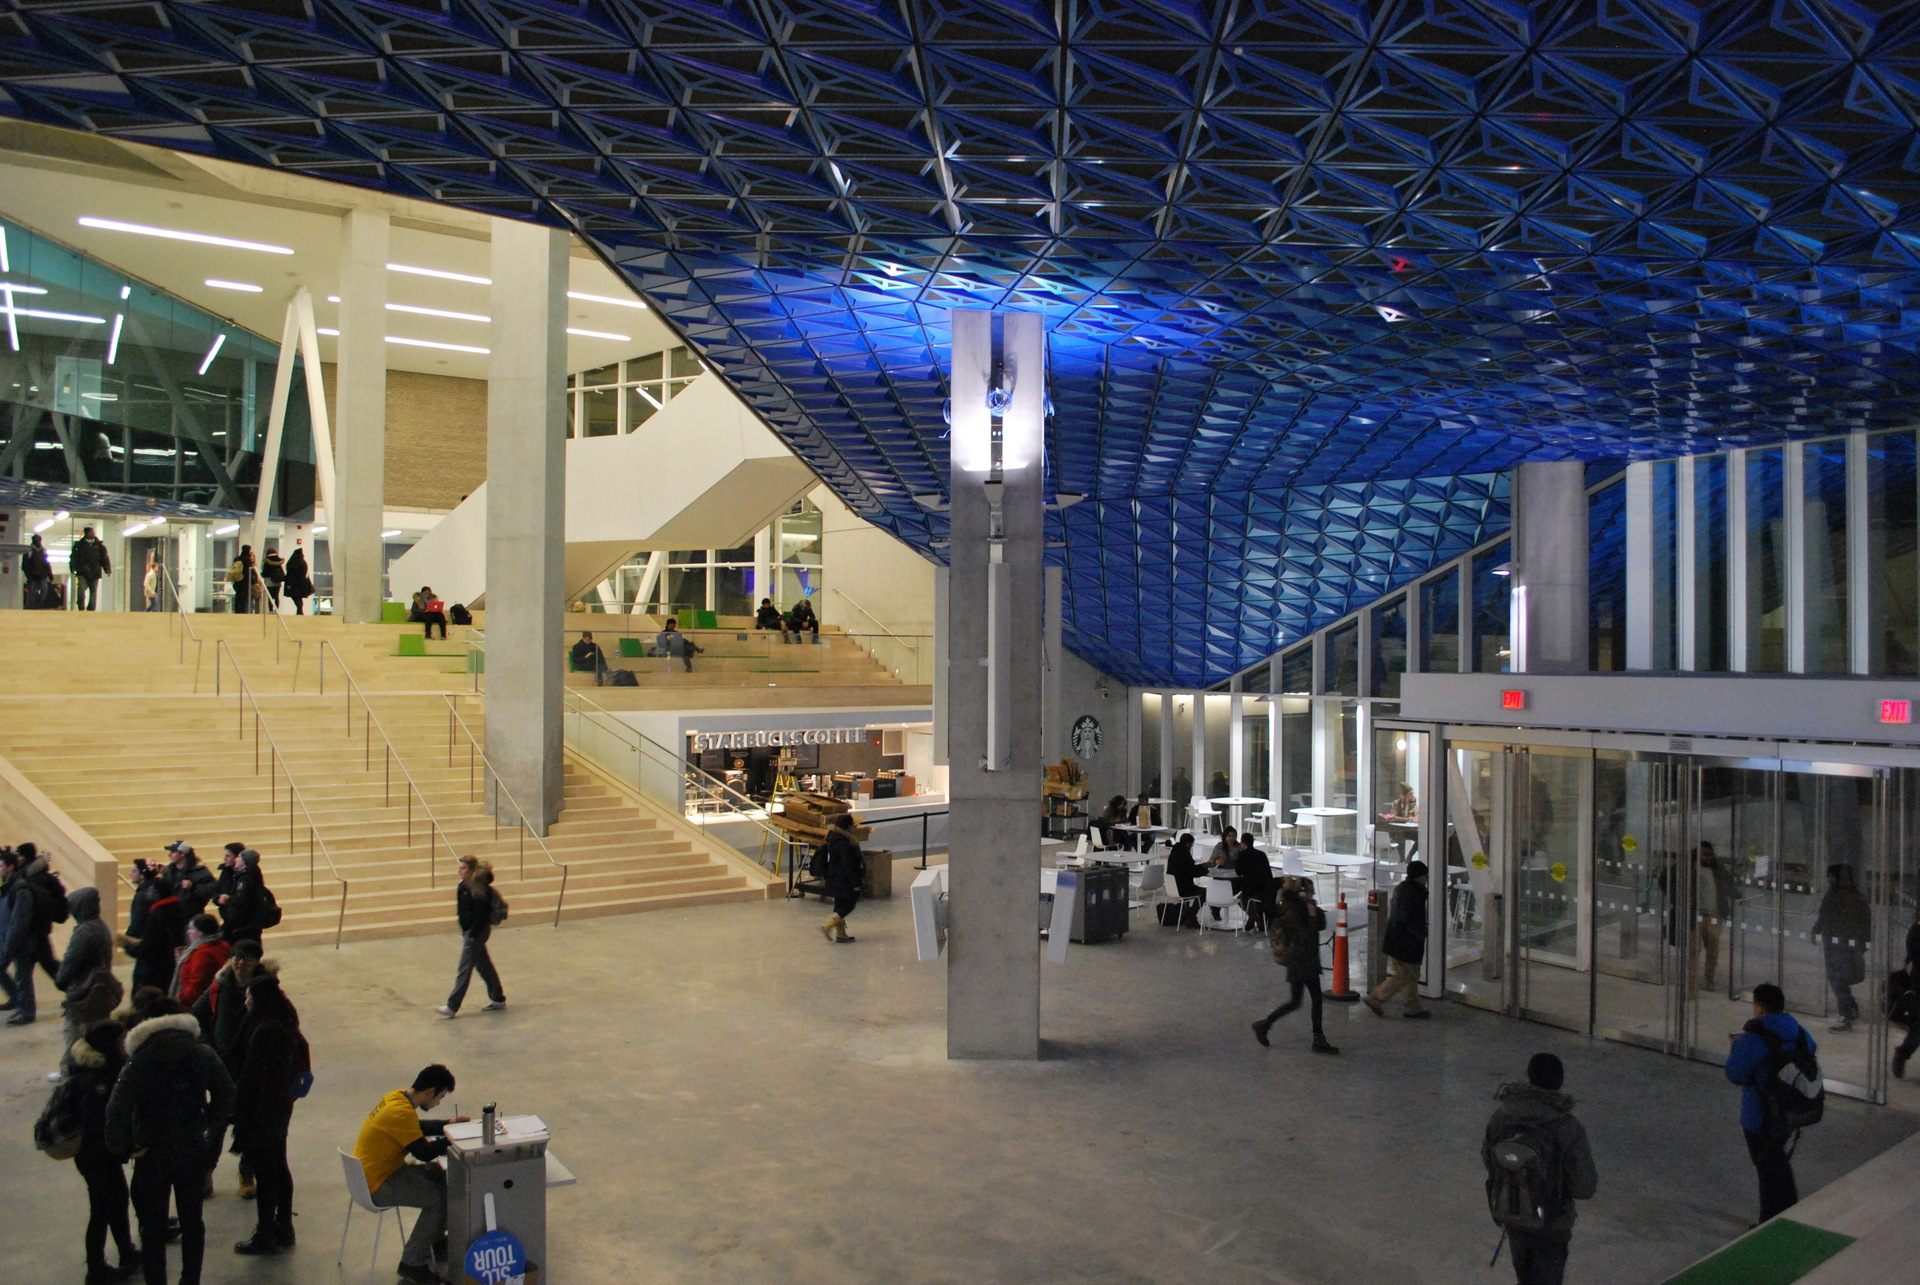 The finish of Sherwin-Williams Coil Coatings's Valflon Prismatic Blue on the metal panels evokes a molecular crystalline lattice as it might appear under a powerful microscope. The Prismatic Blue soffit extends into the SLC's spacious interior lobby and provides a continuous look.